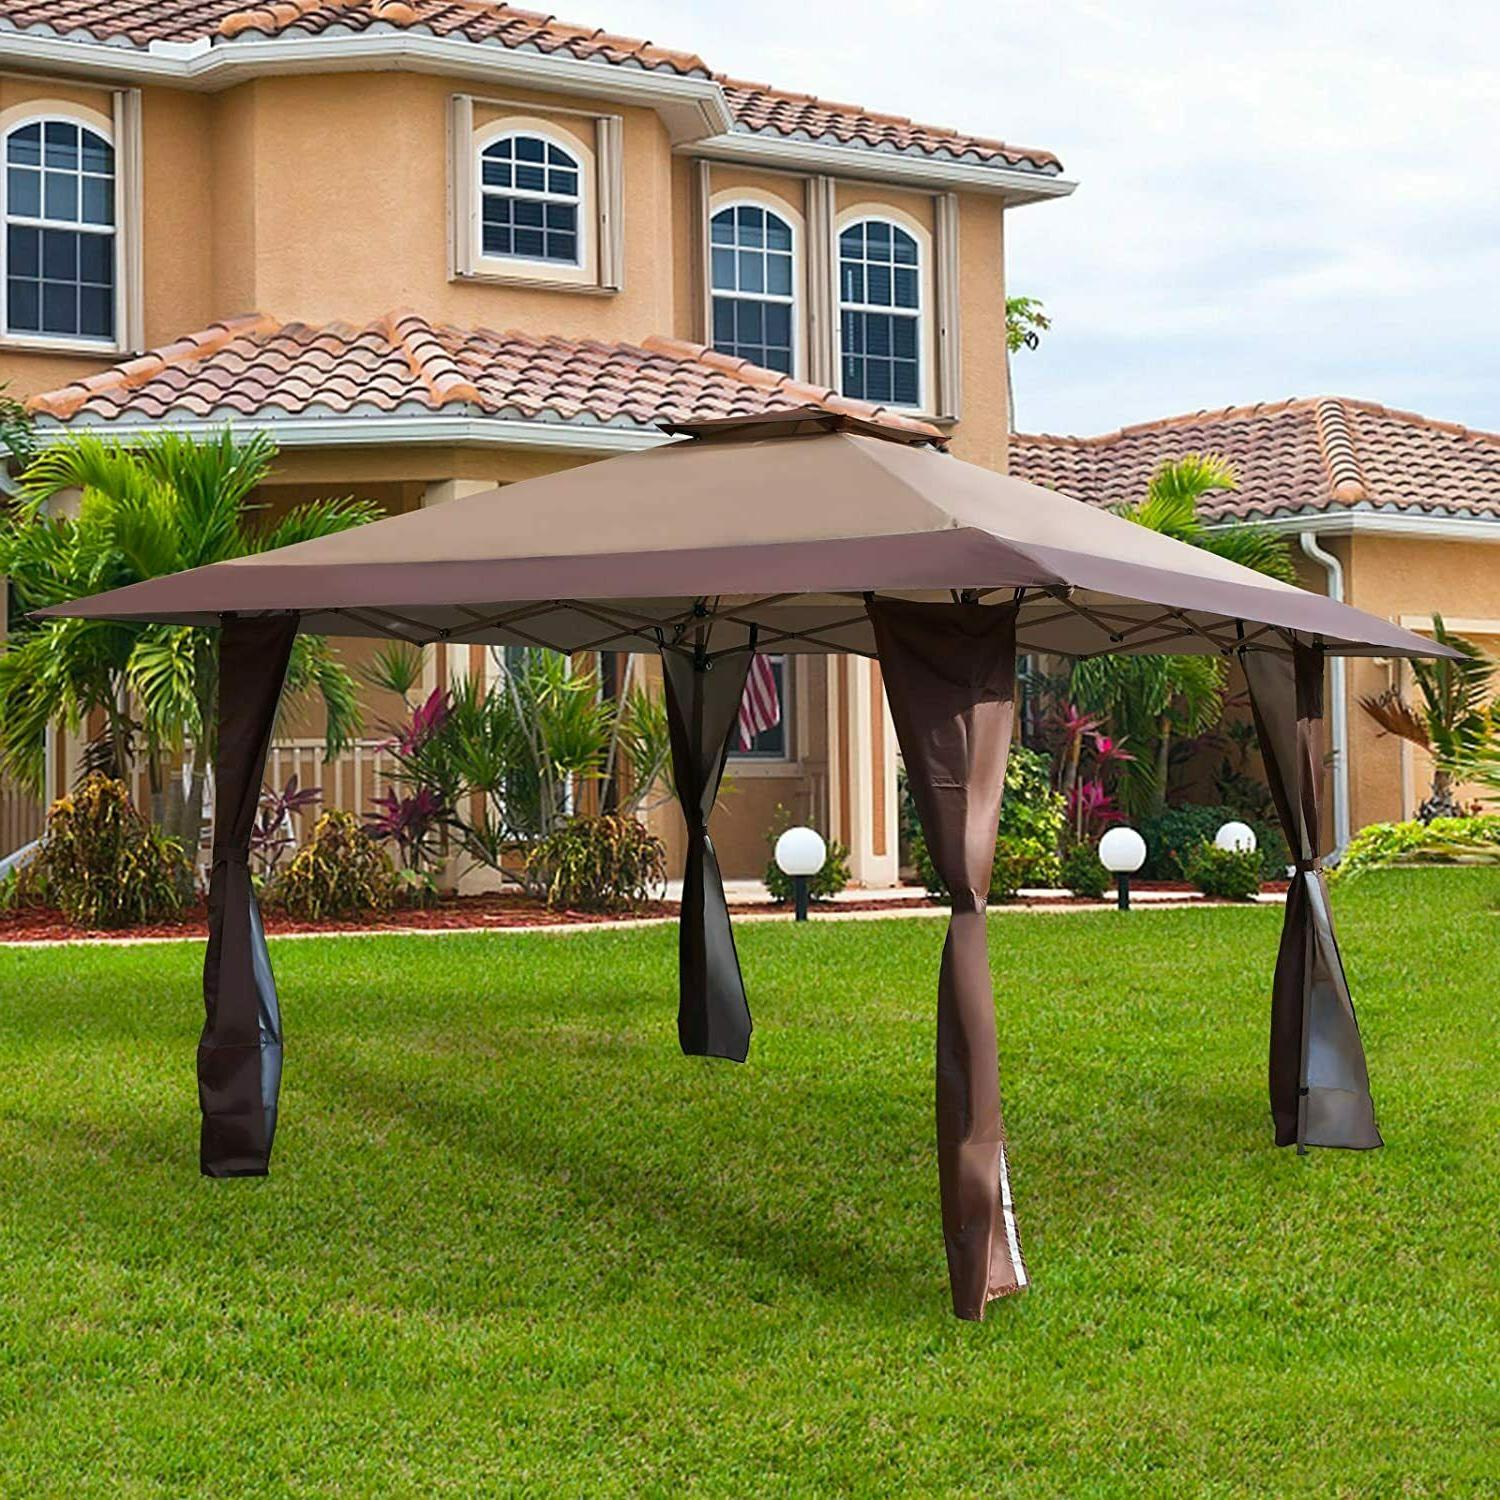 13' x13' UV Block Sun Shade Gazebo Canopy Gazebo Shade for O